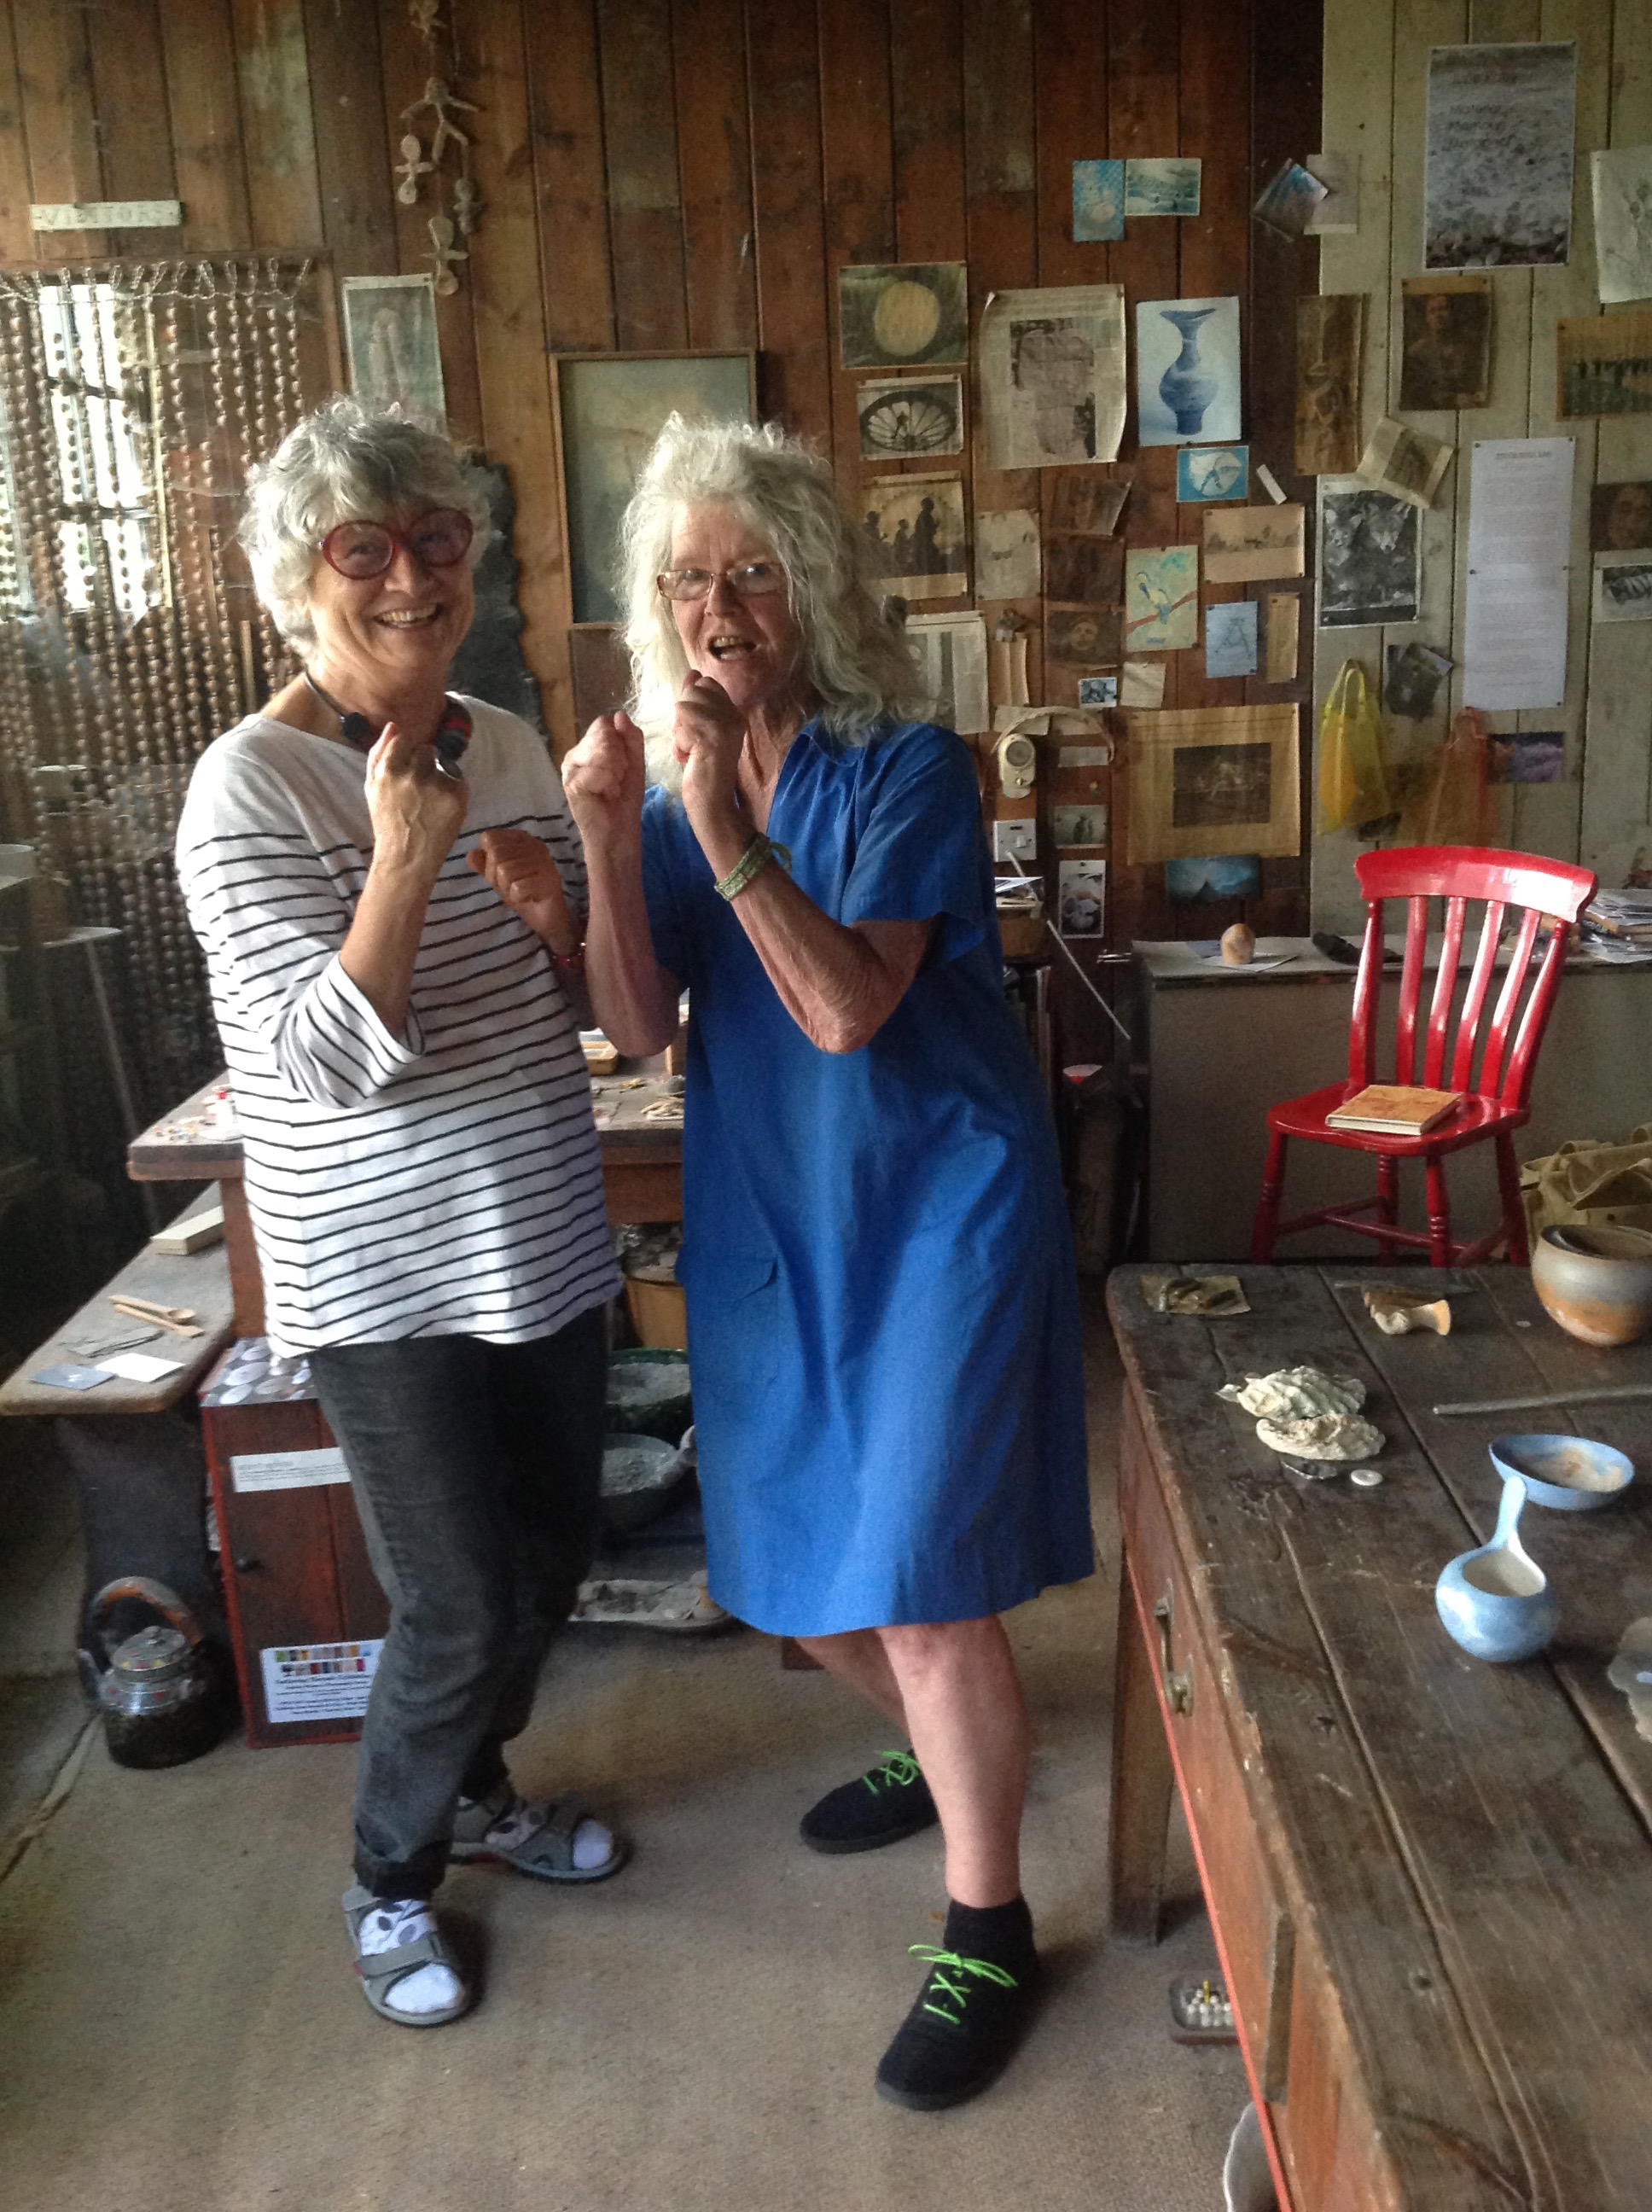 Paca Sanchez, left and Elspeth Owen meeting in Elspeth's studio, summer 2018, and realising they are the same age,.